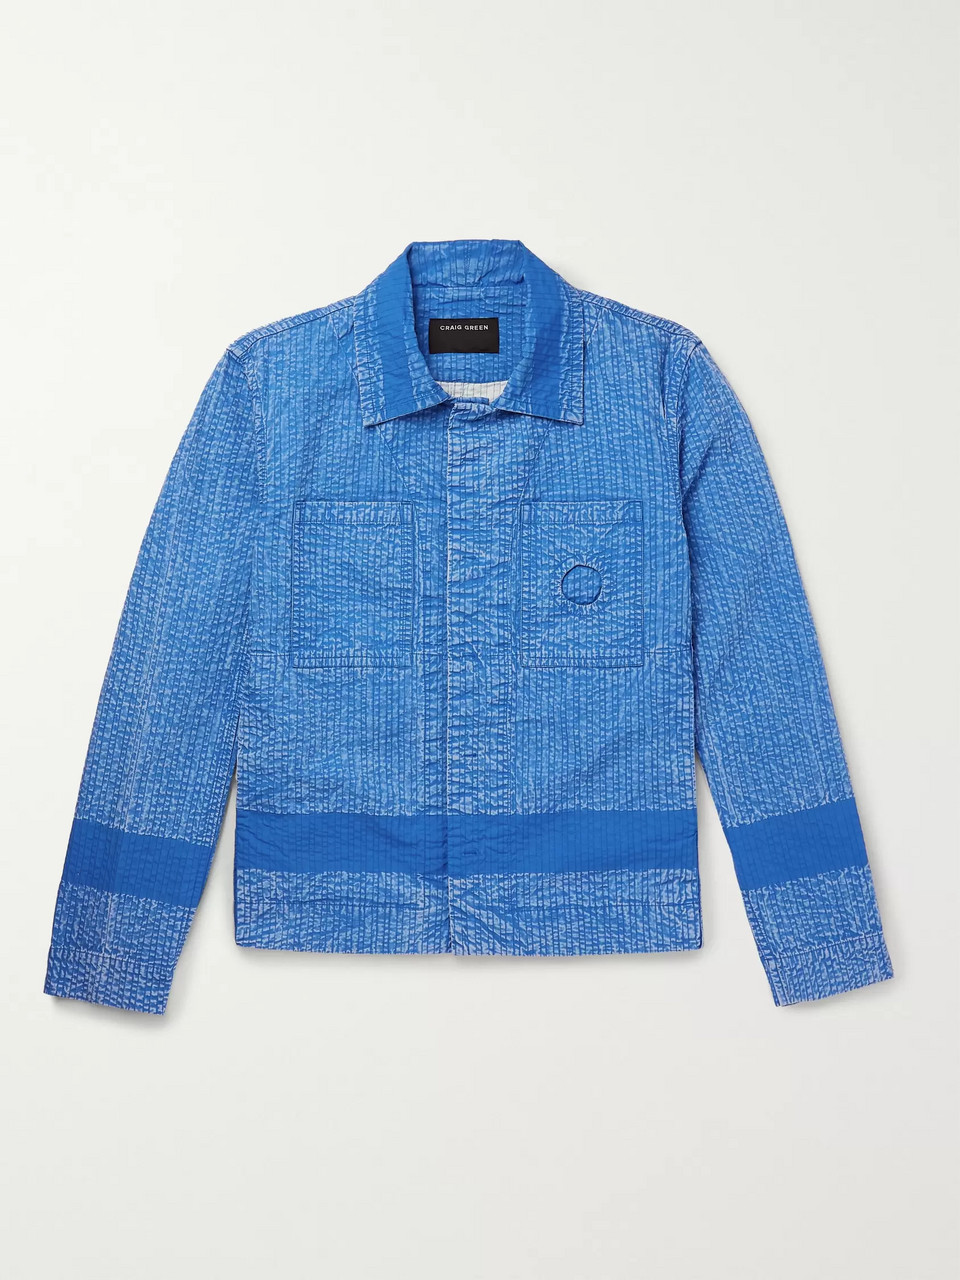 Craig Green Acid-Washed Cotton Jacket